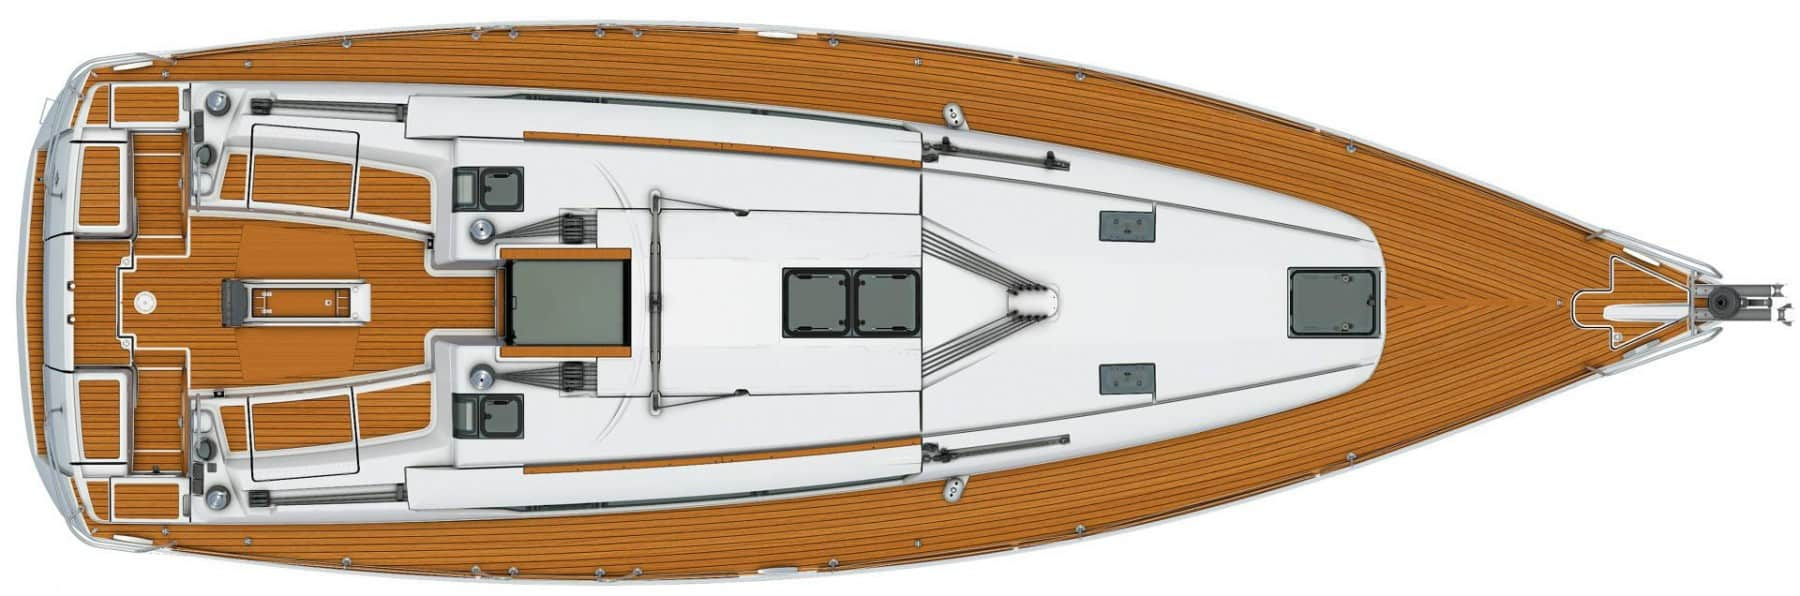 View from above showing the exterior of Jeanneau Sun Odyssey 449